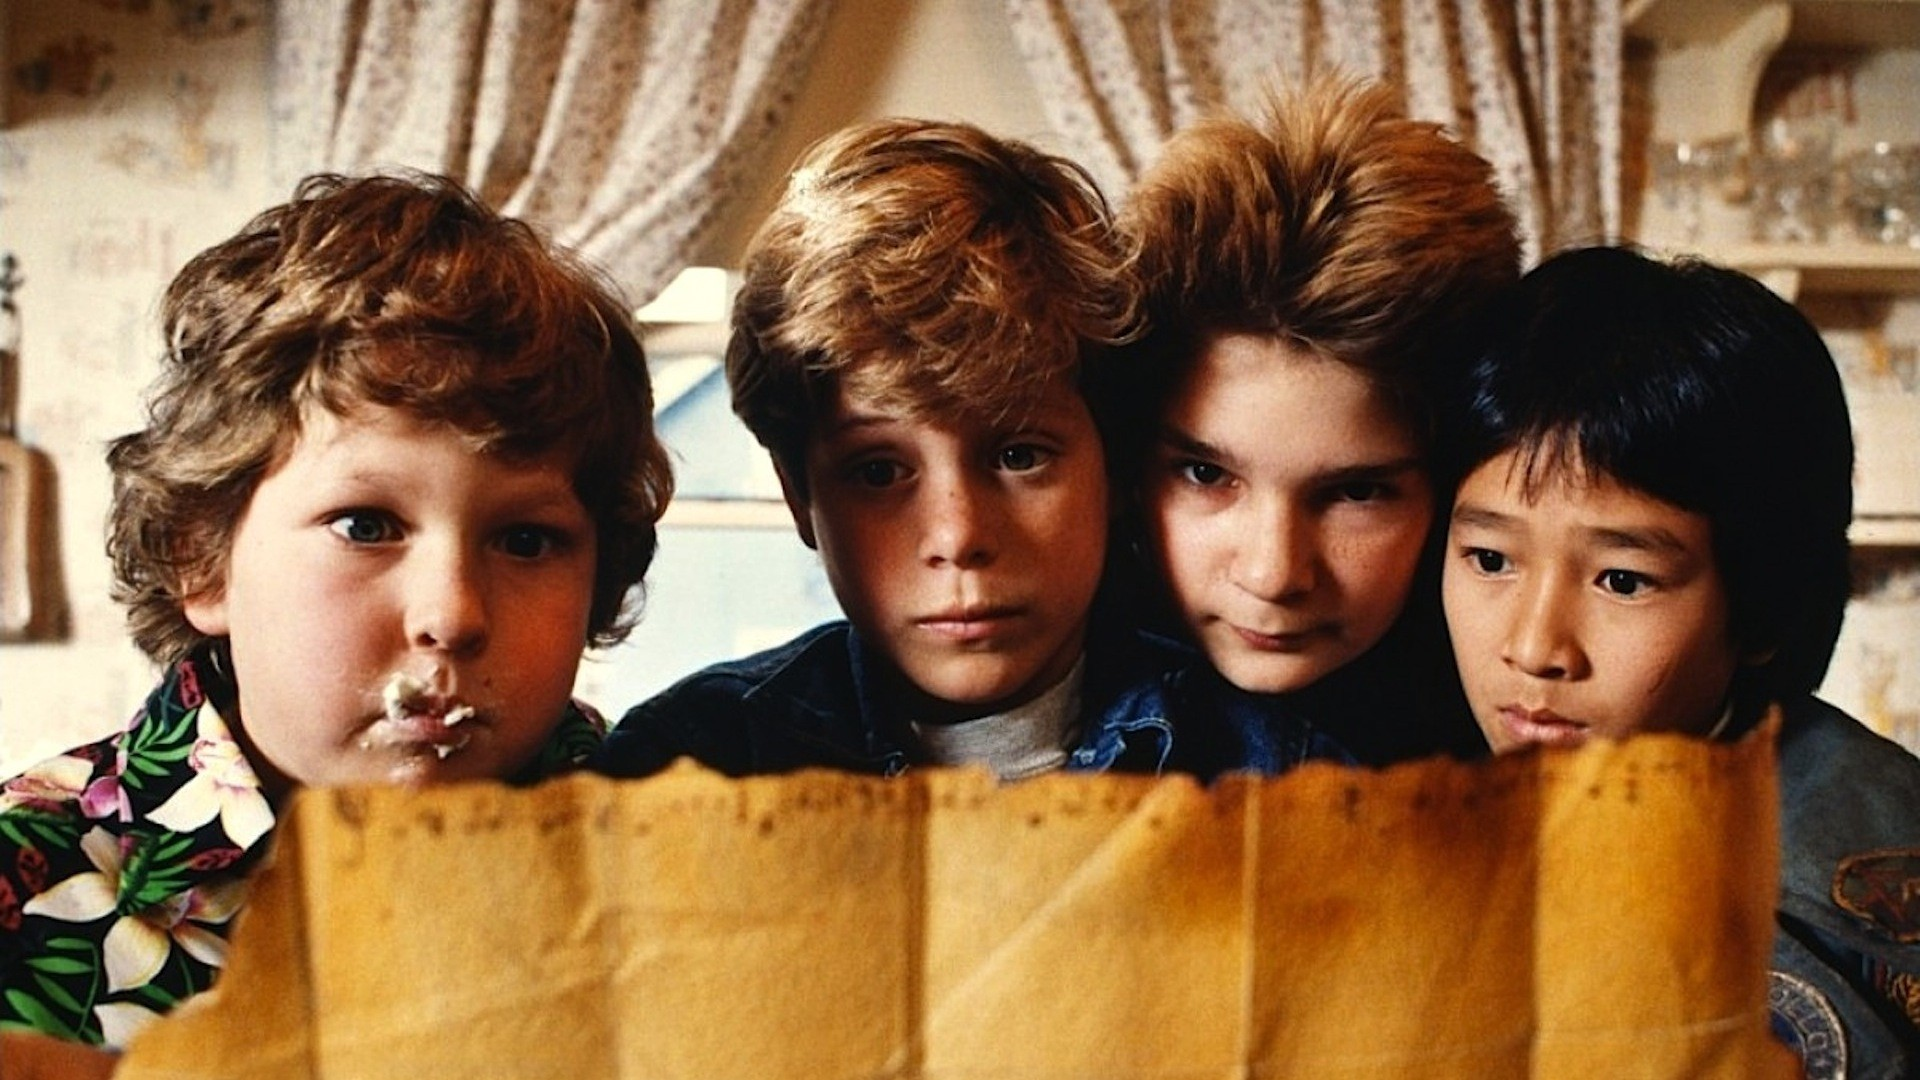 It's Been 30 Years Since Lupe Ontiveros Played a Maid in 'The Goonies'